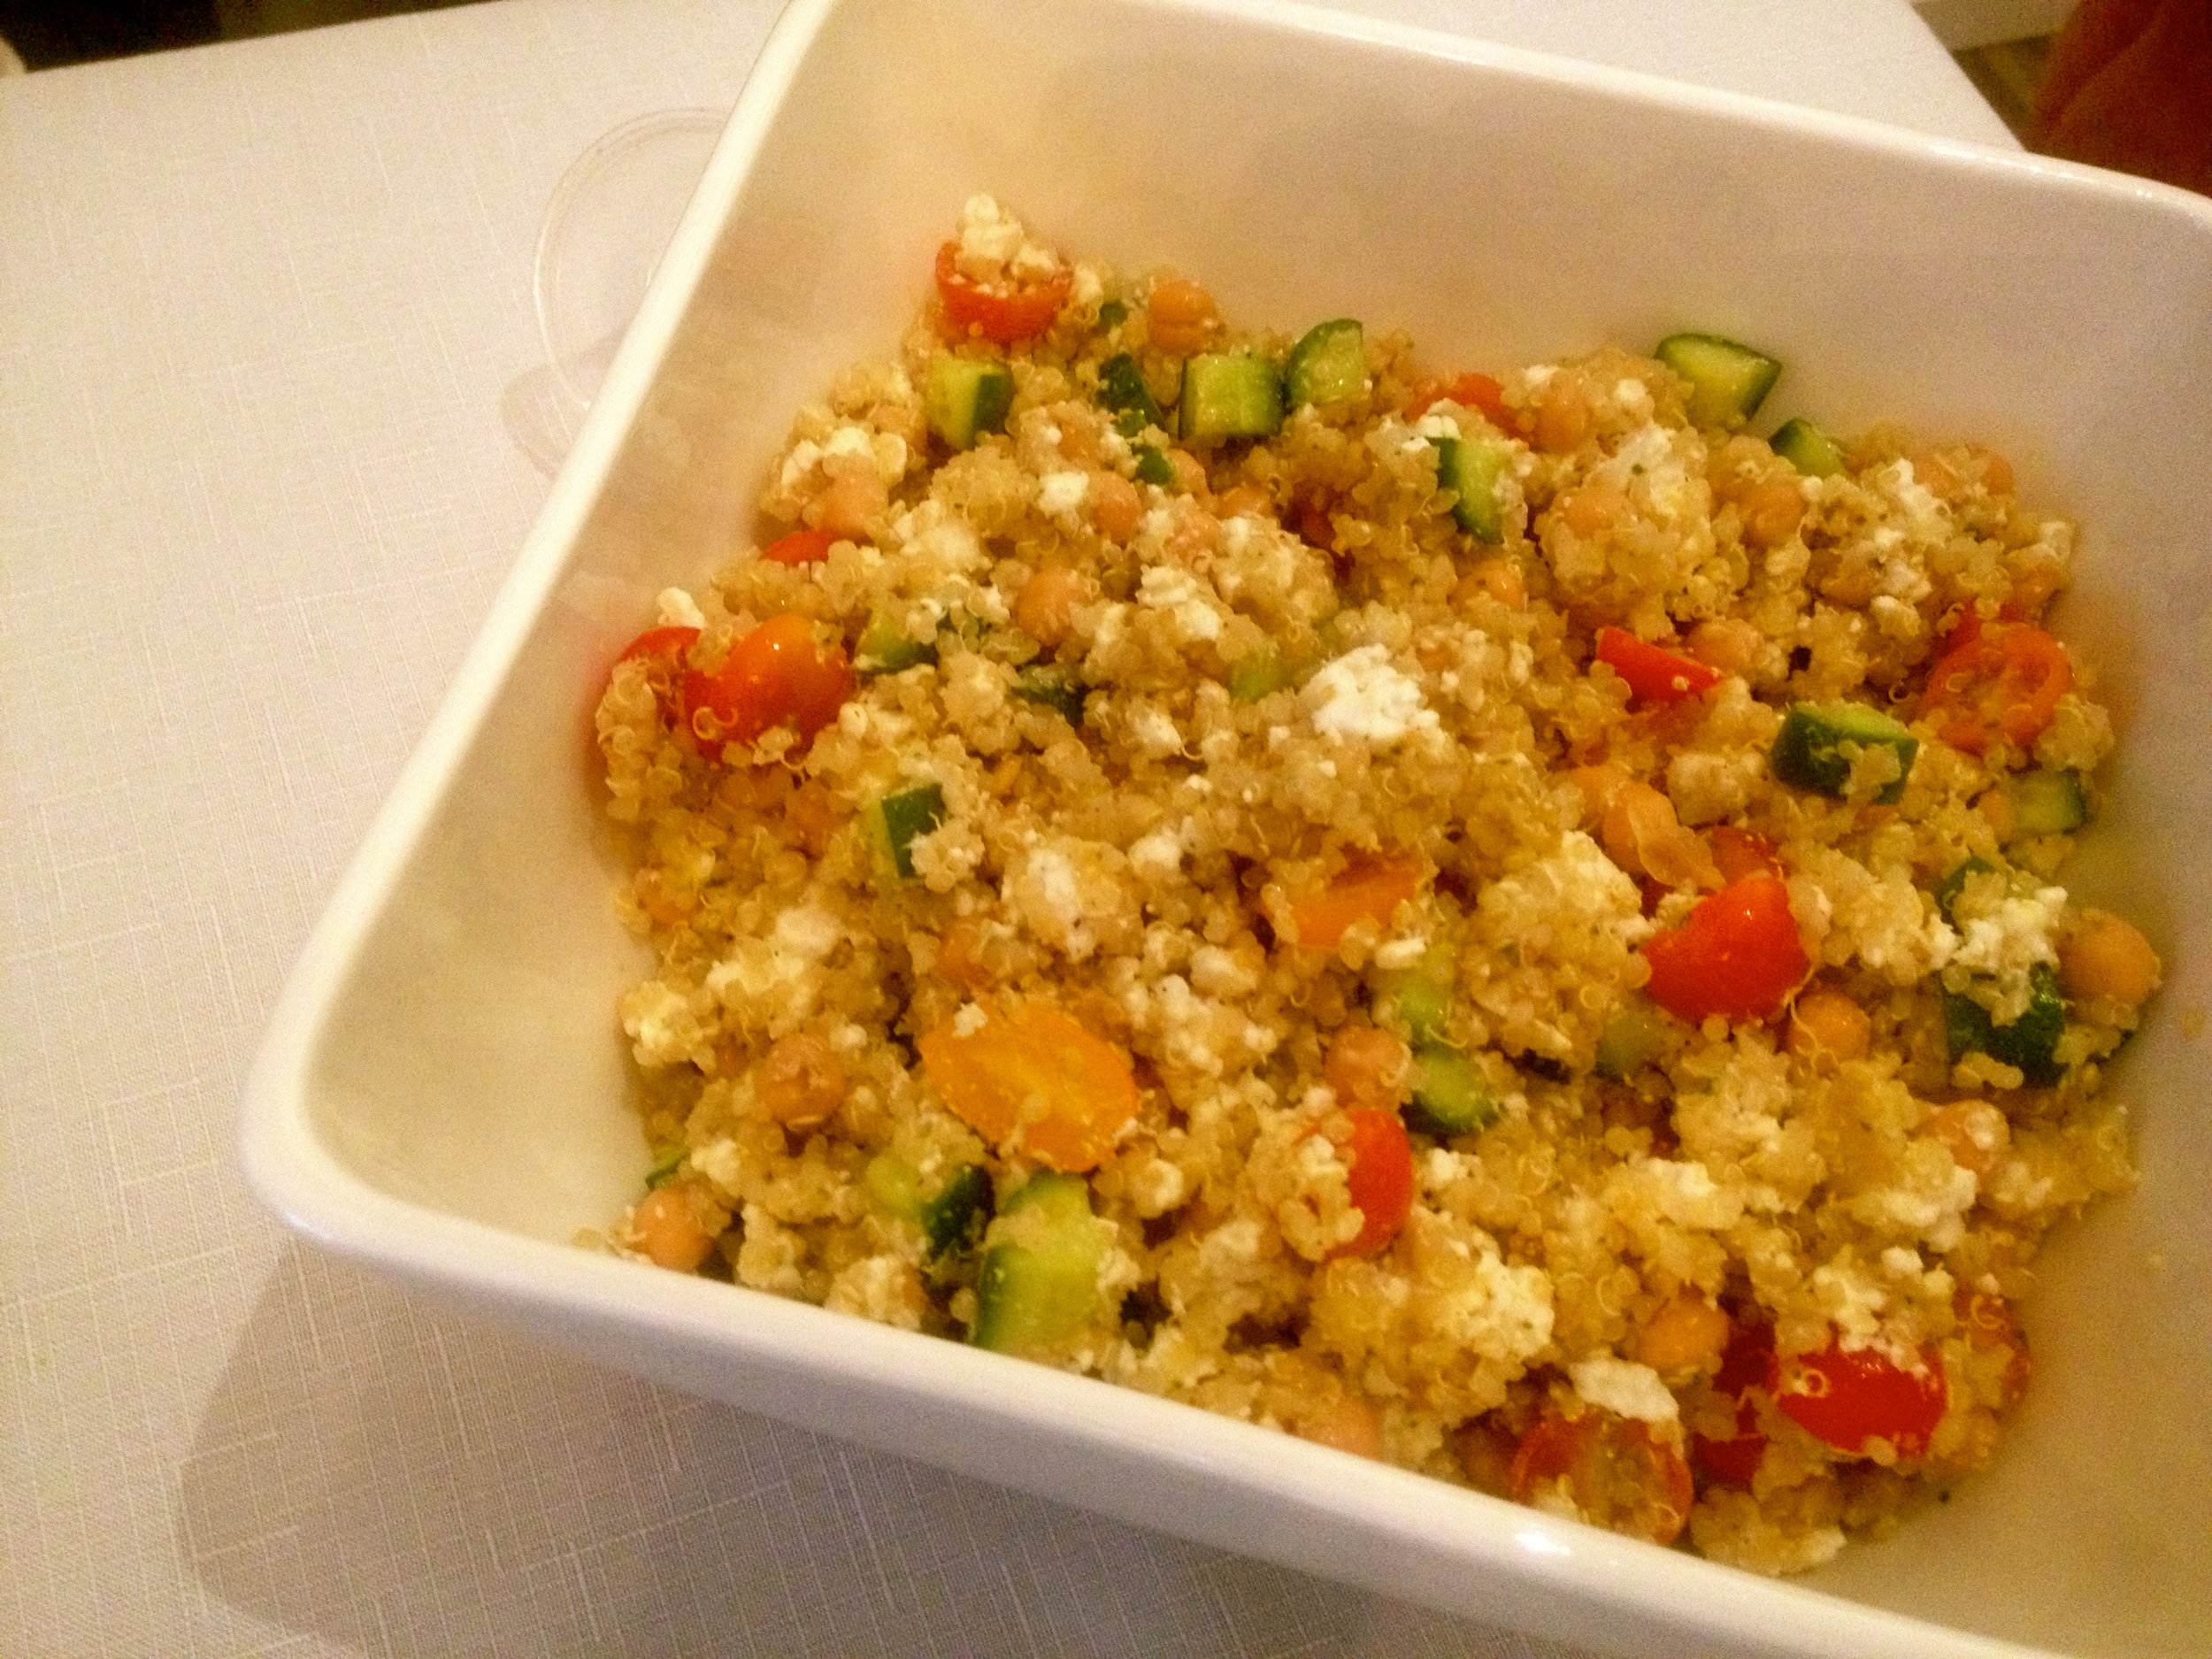 Attended an event last week showcasing AMAZING quinoa from Claudine of Stiletto & Spice. Recipes here!